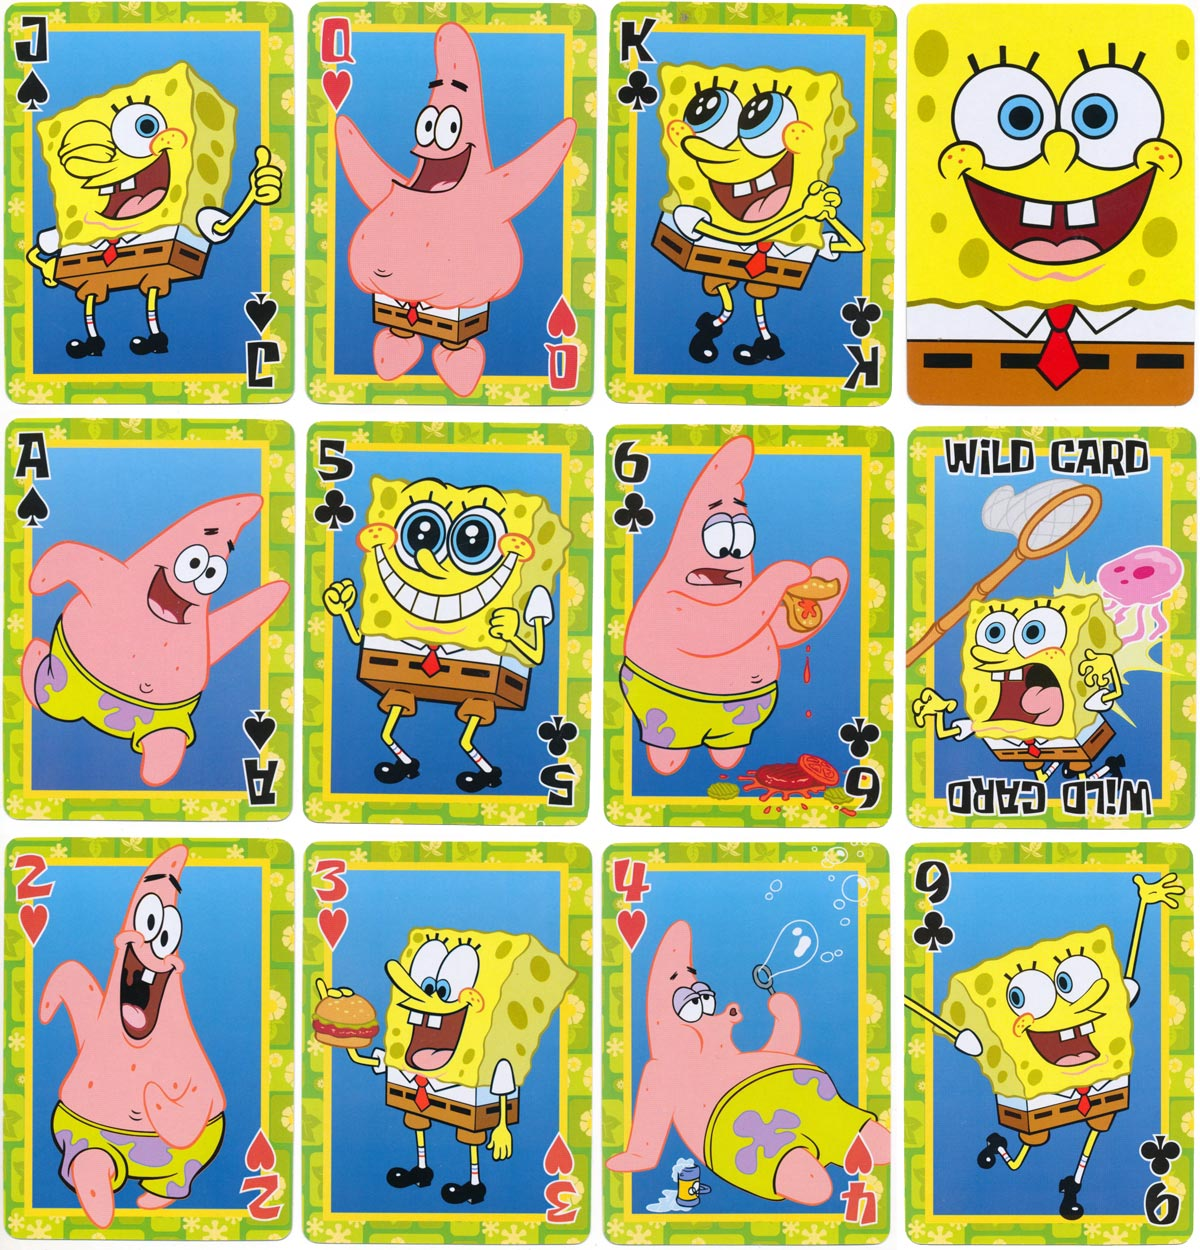 spongebob squarepants the world of playing cards